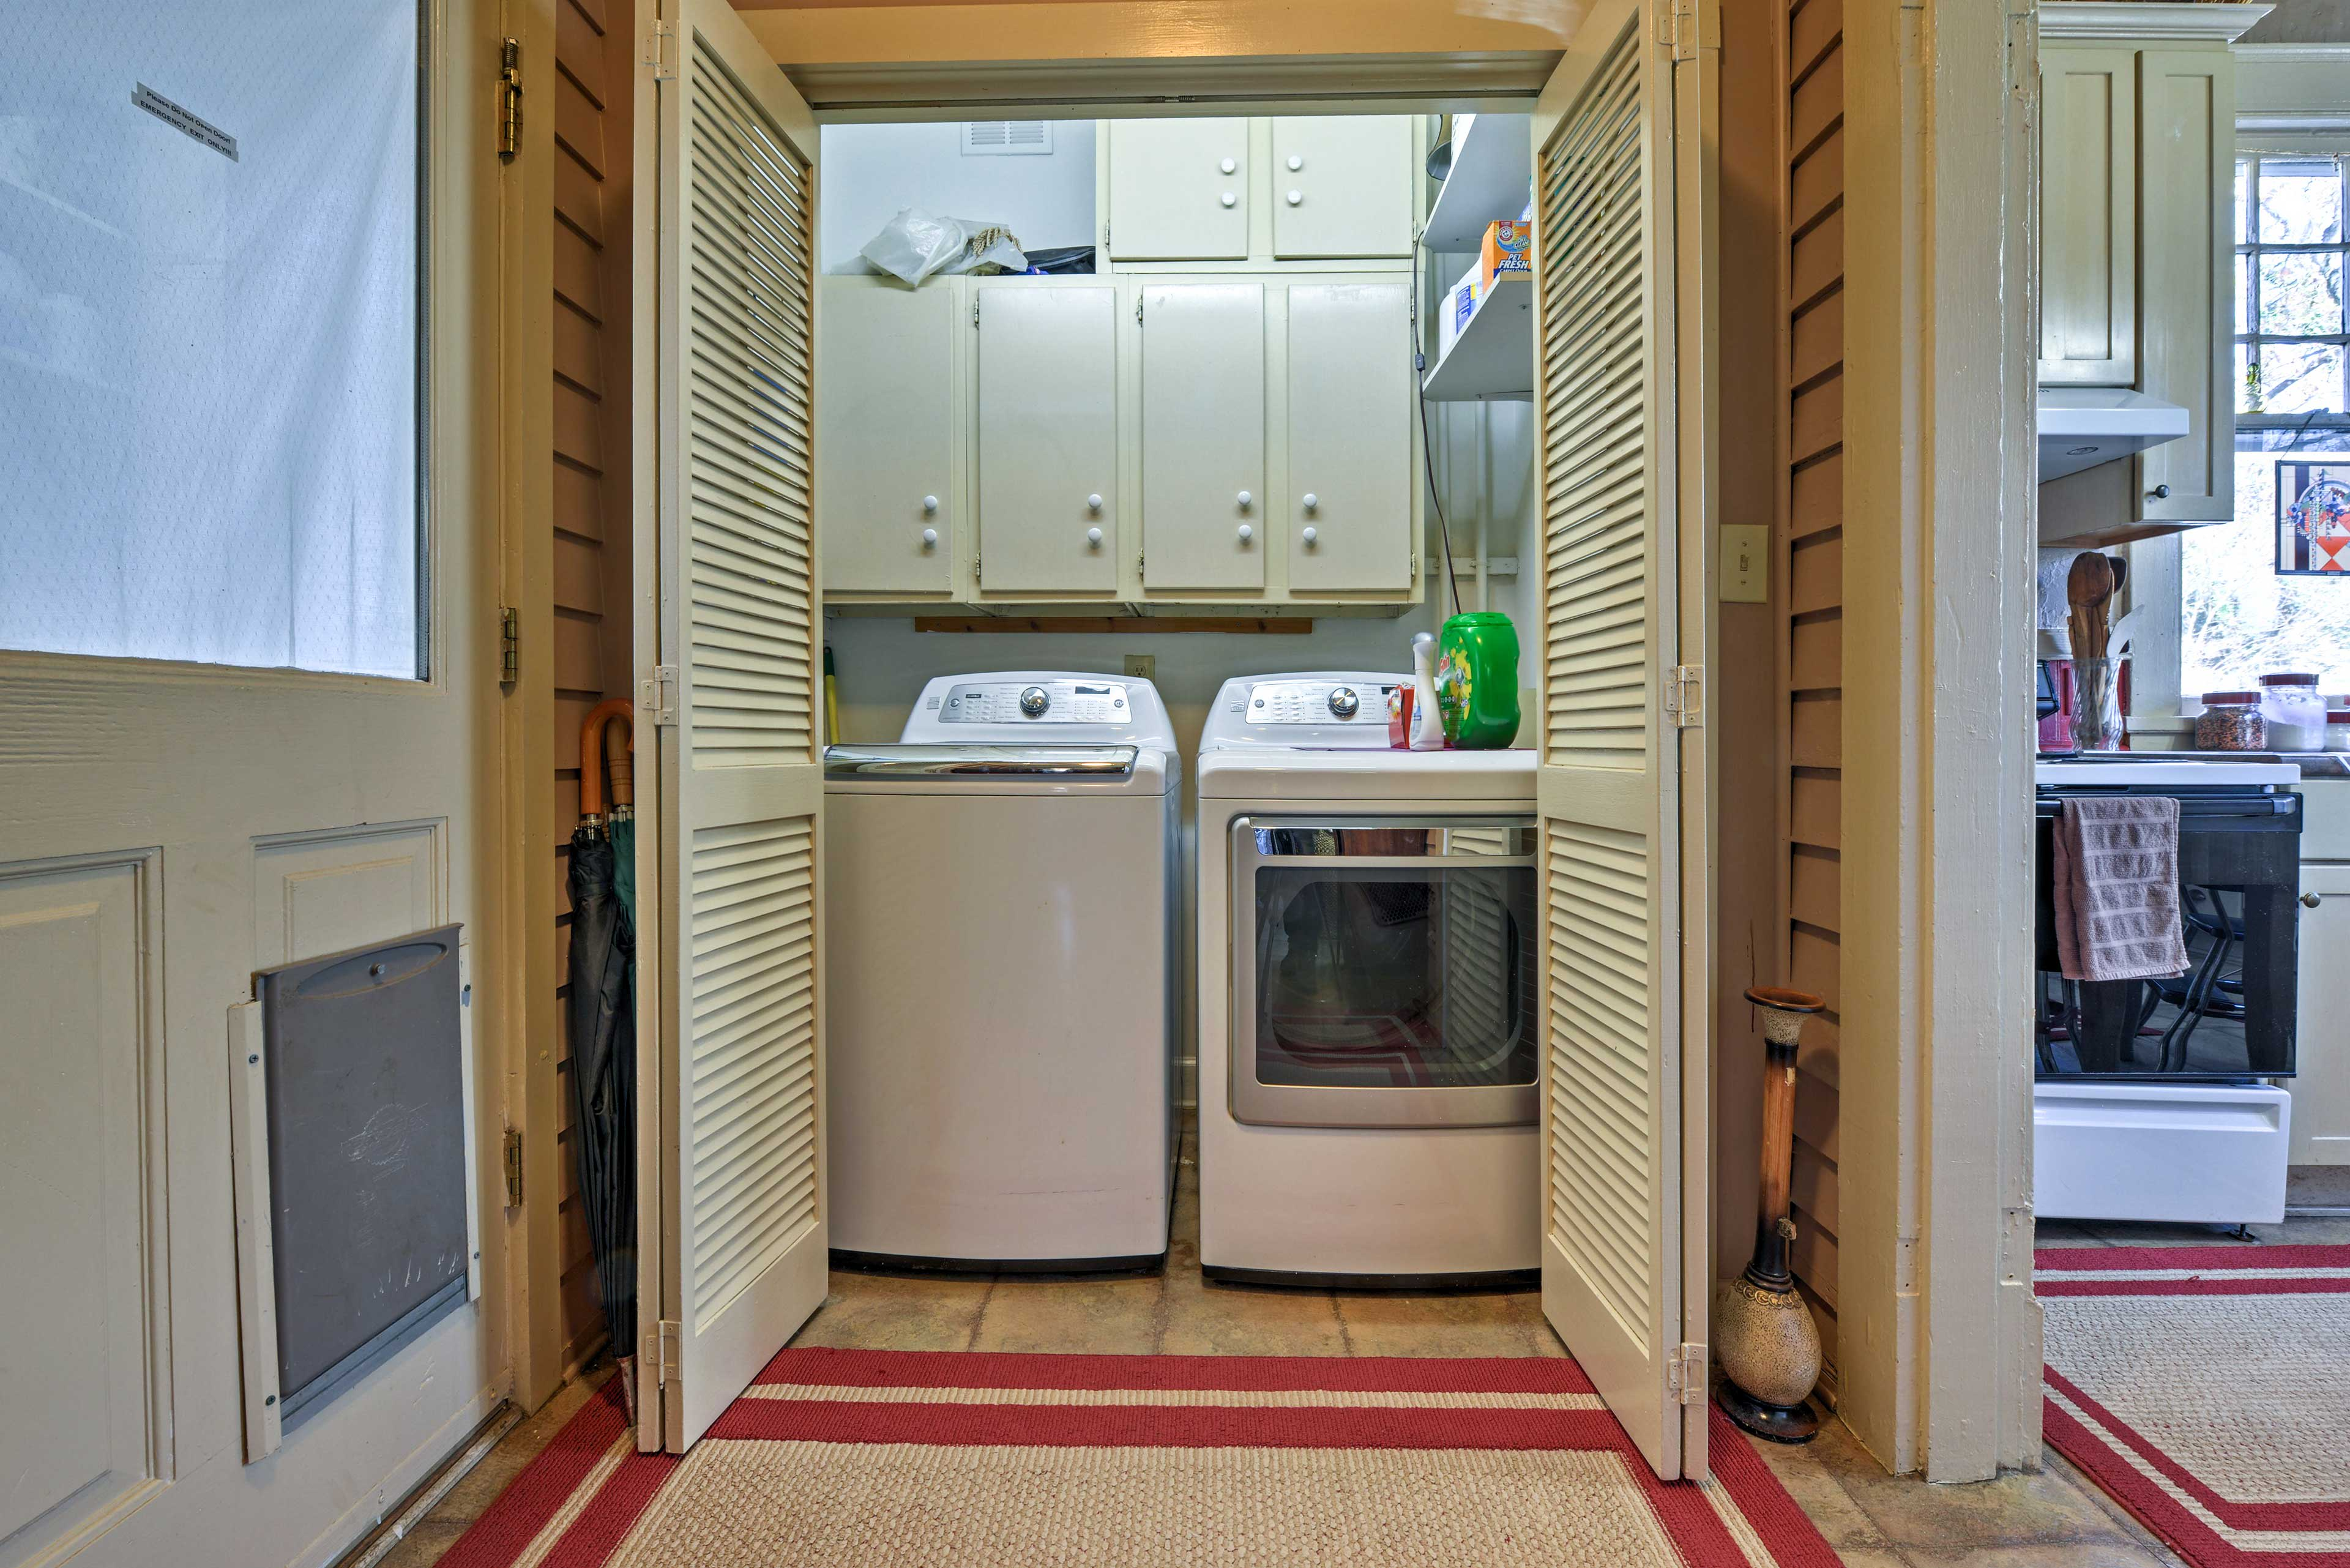 Keep your clothes fresh and clean using the washer and dryer!